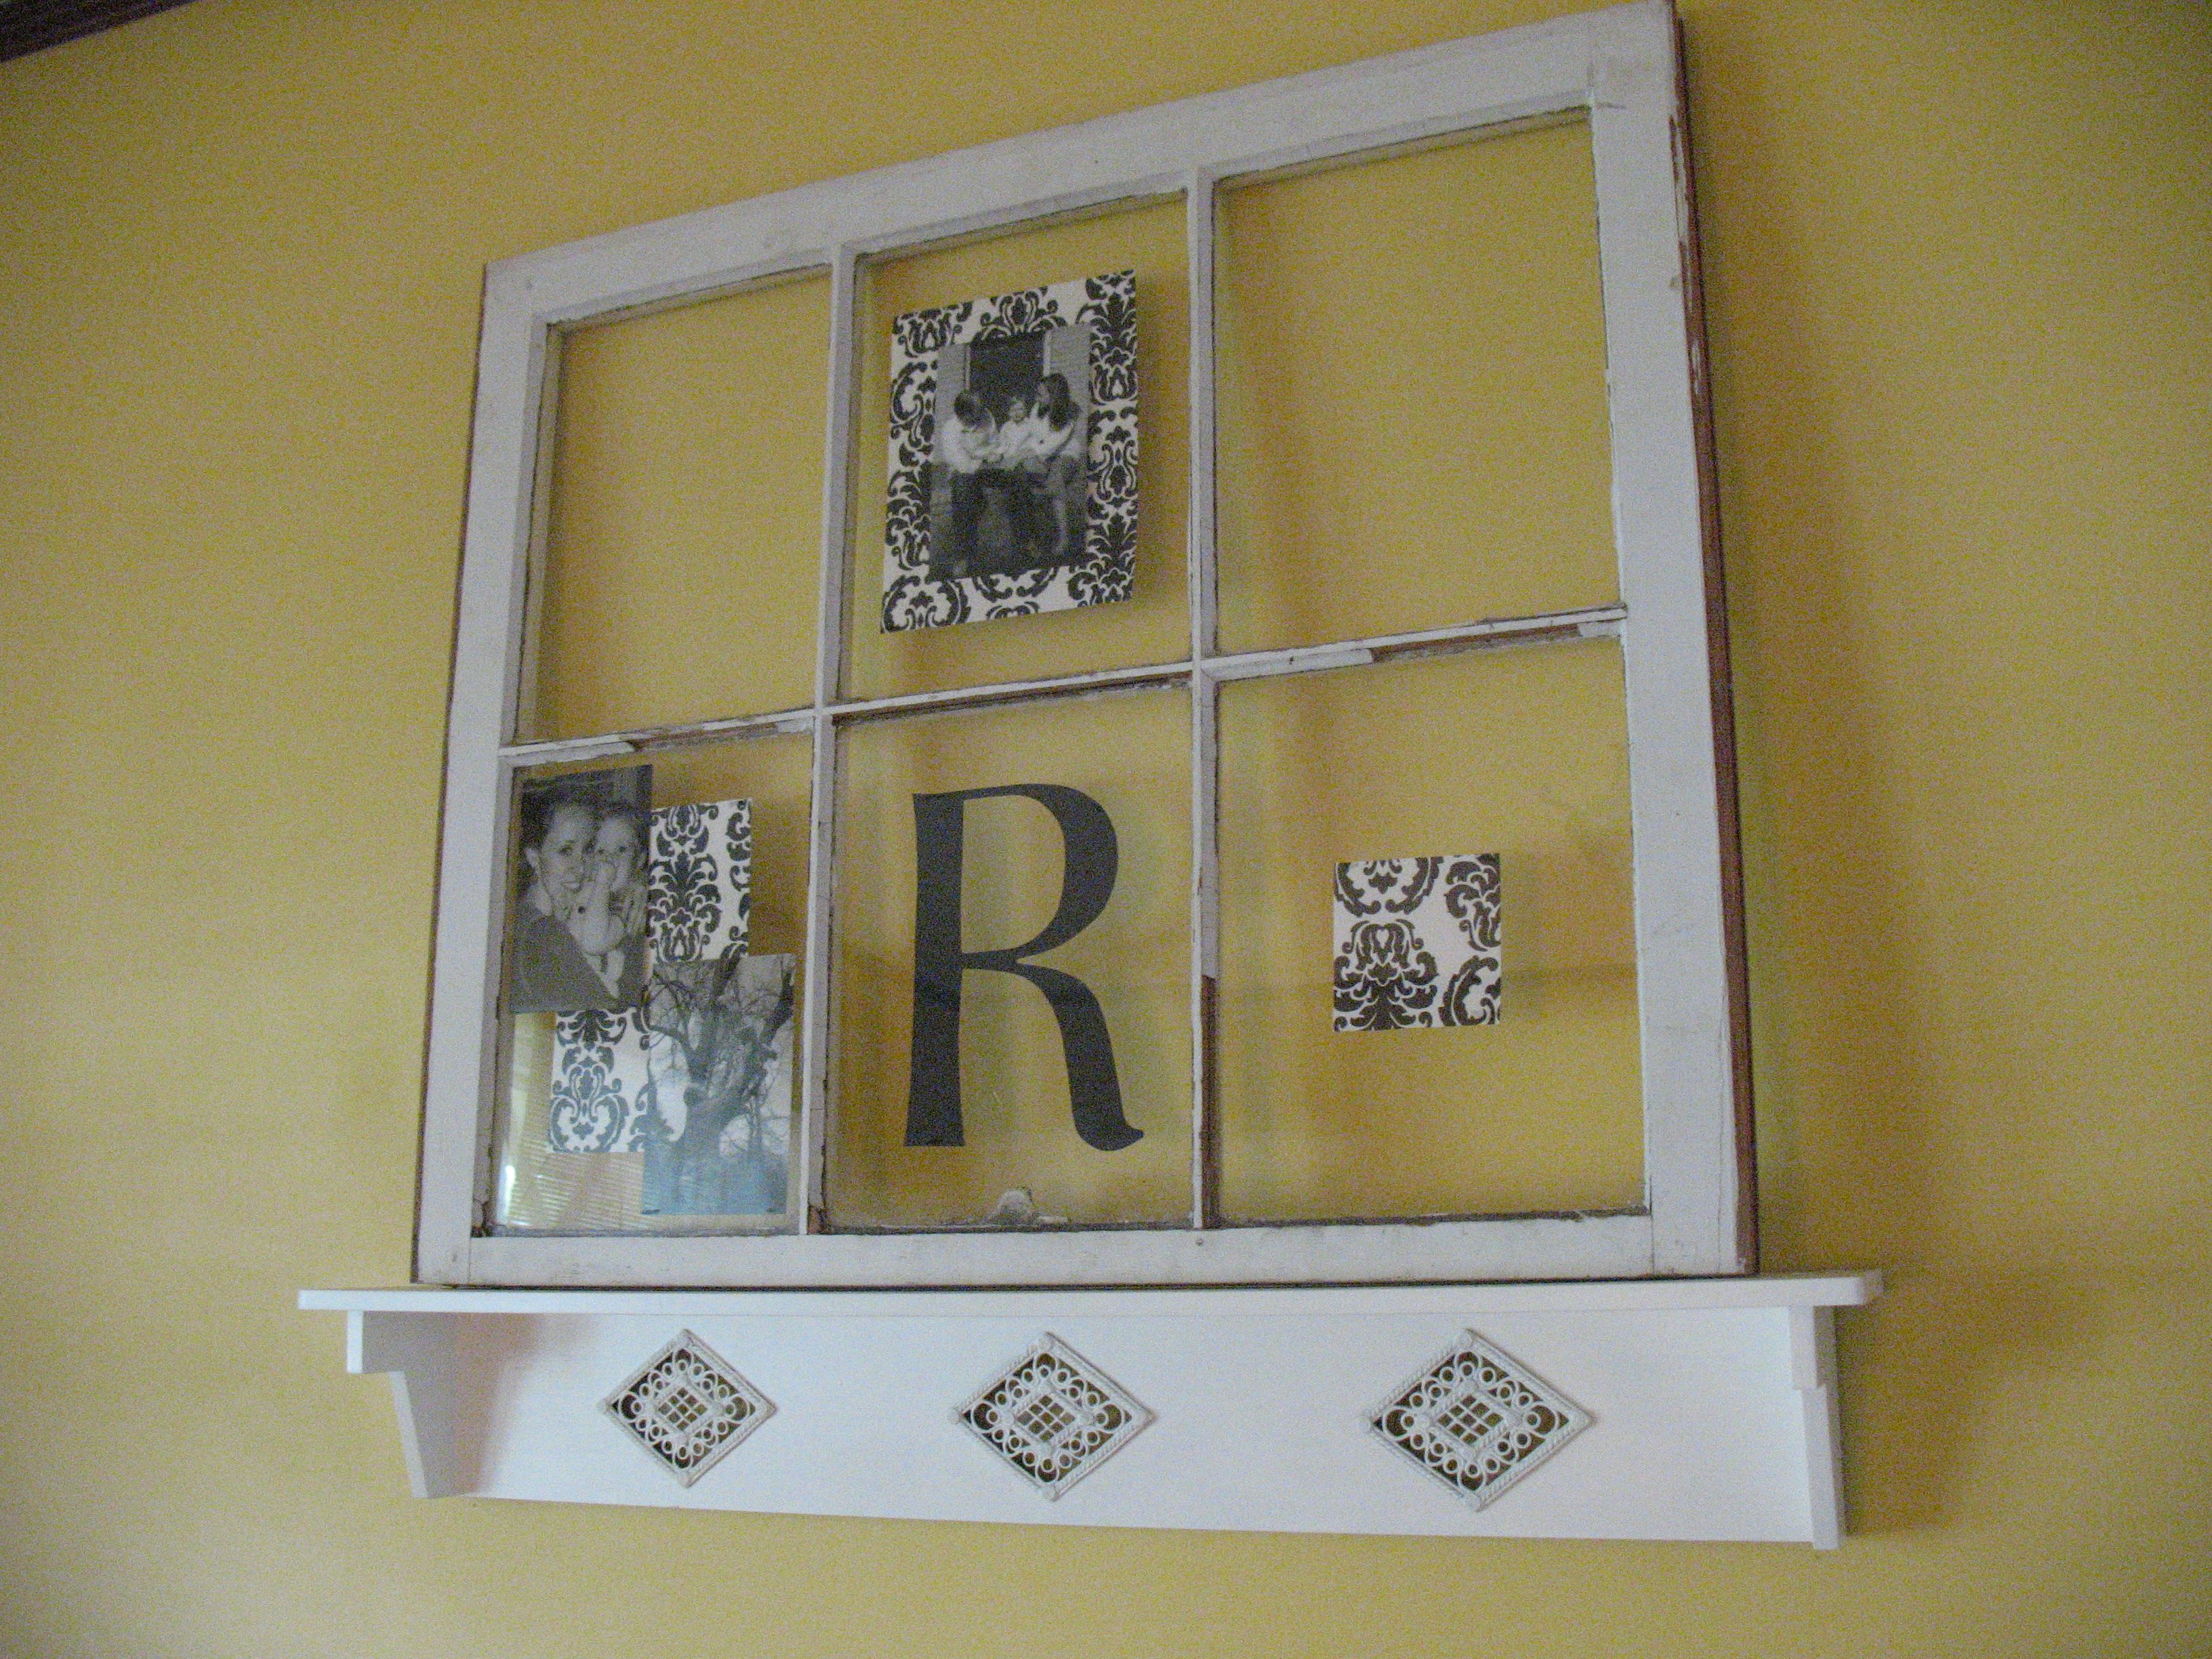 Decorating with an old window window craft and decorating decorating with an old window amipublicfo Gallery